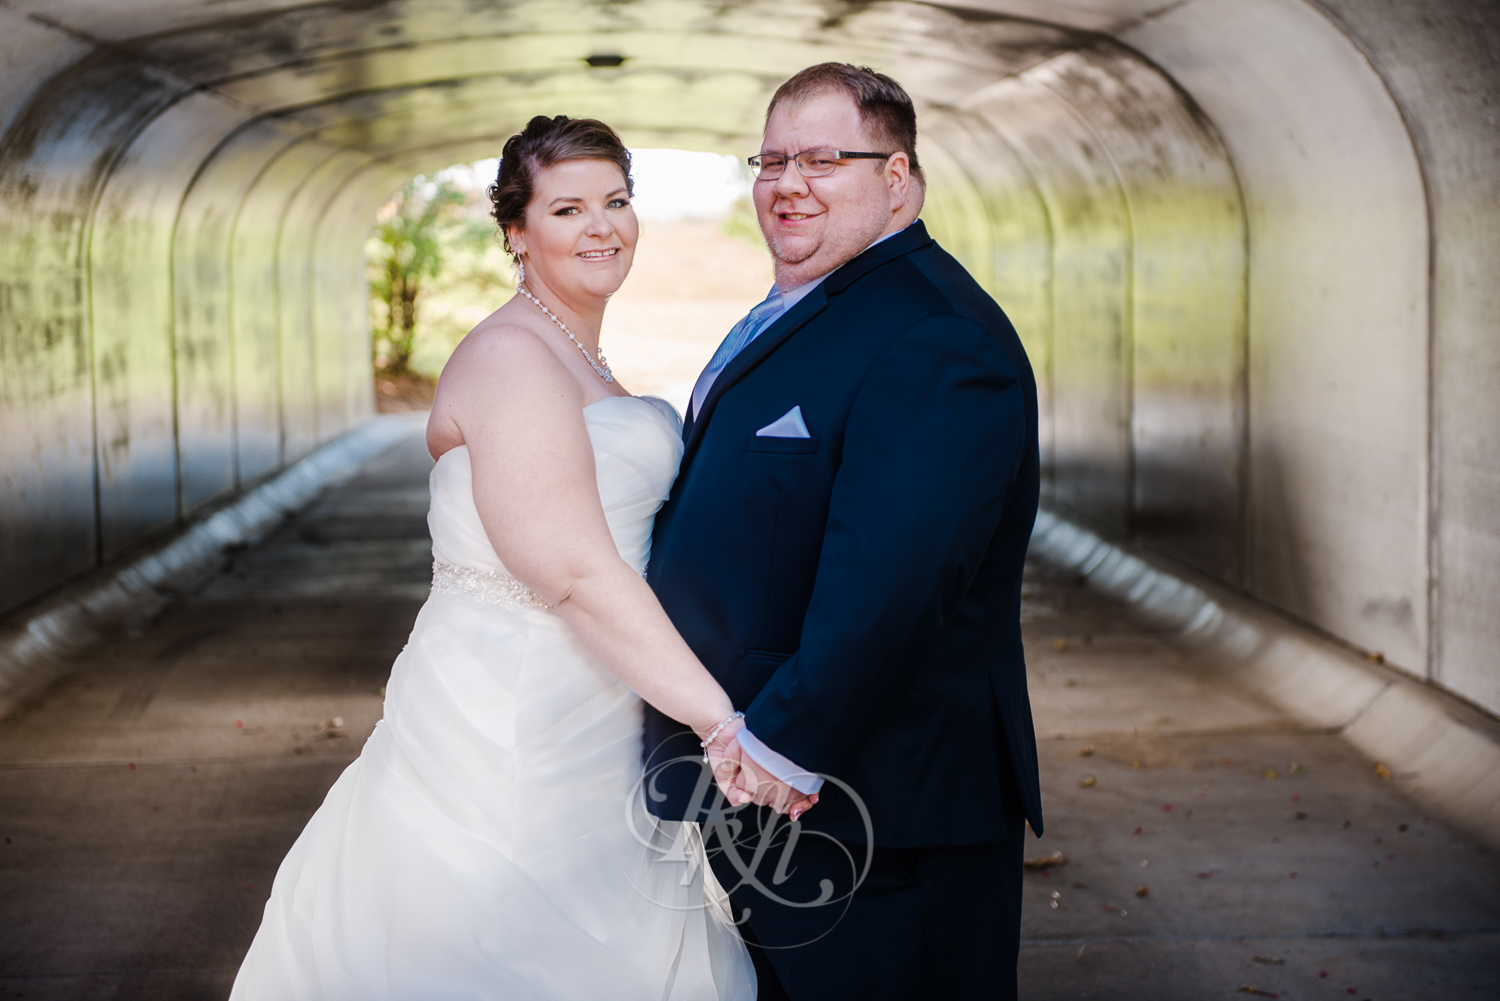 Woodbury Wedding Photography - Amber & Tristan - RKH Images-18